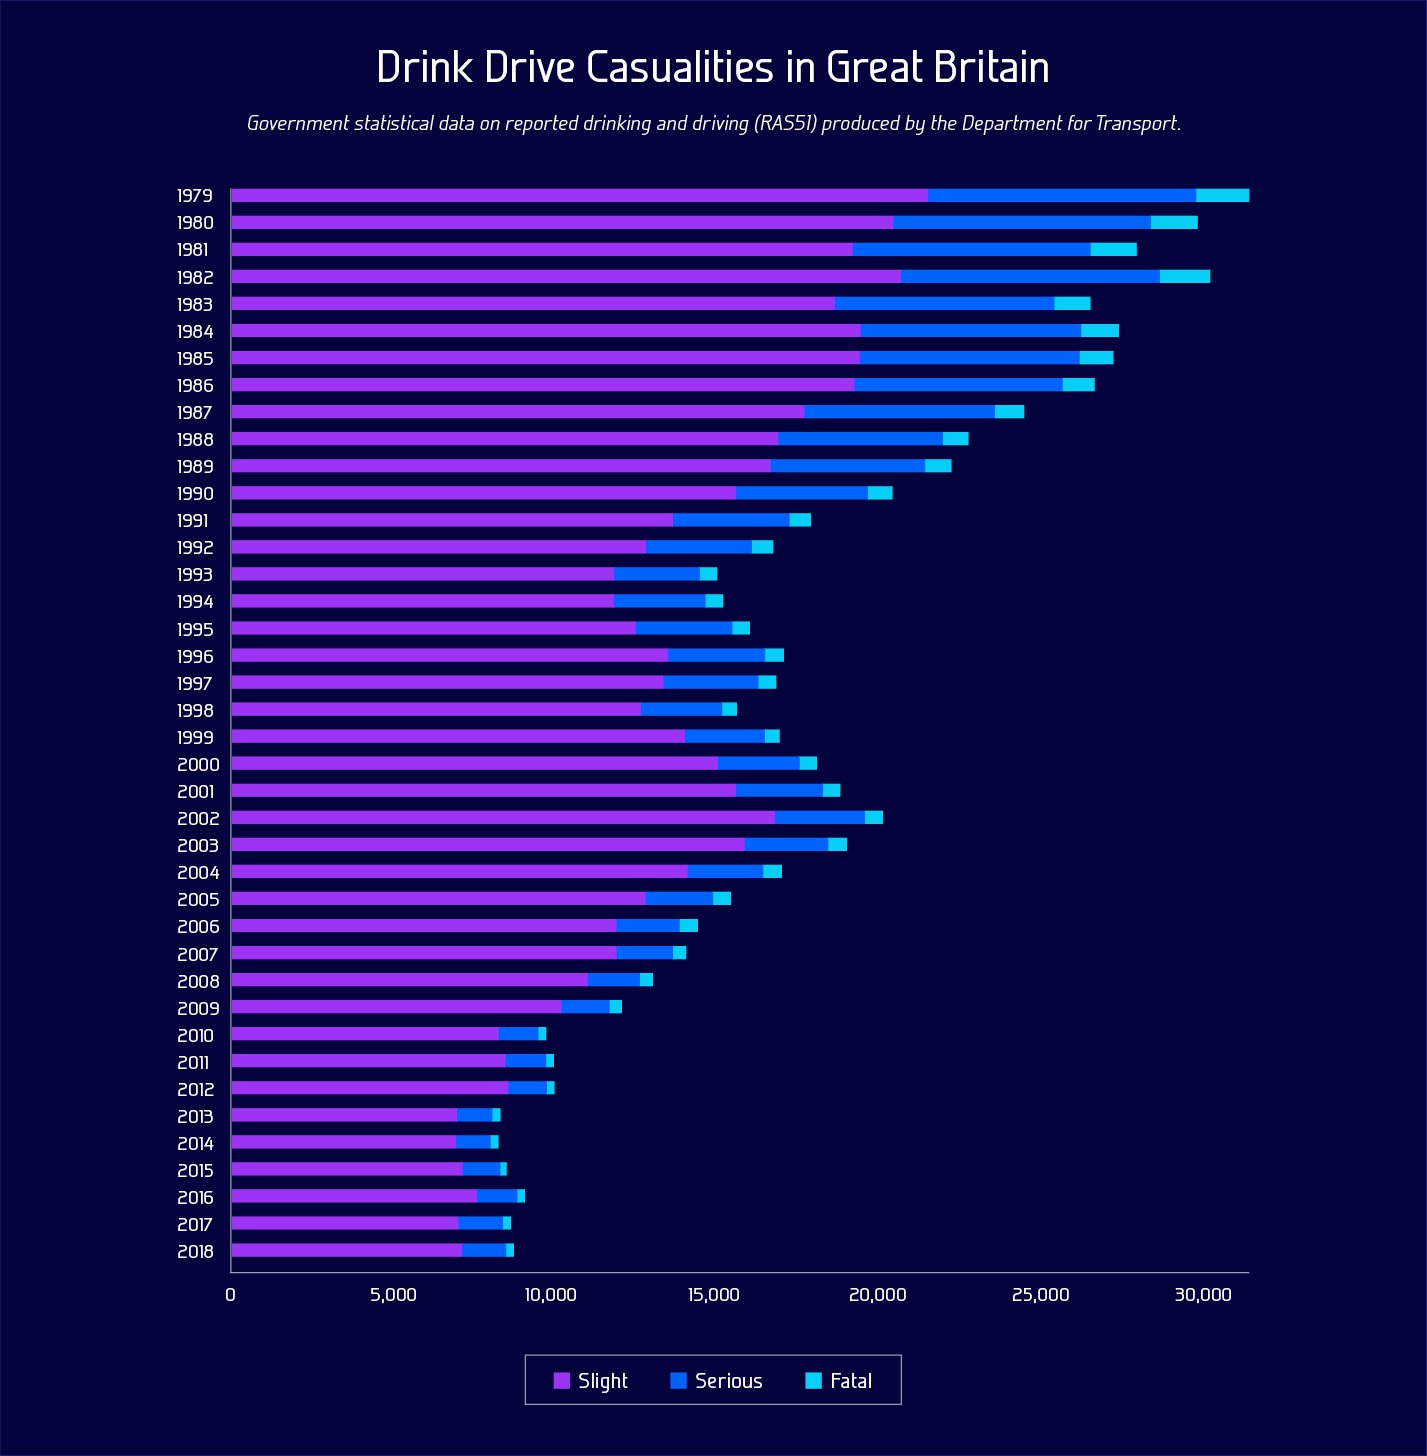 Drink Drive Casualities in Great Britain